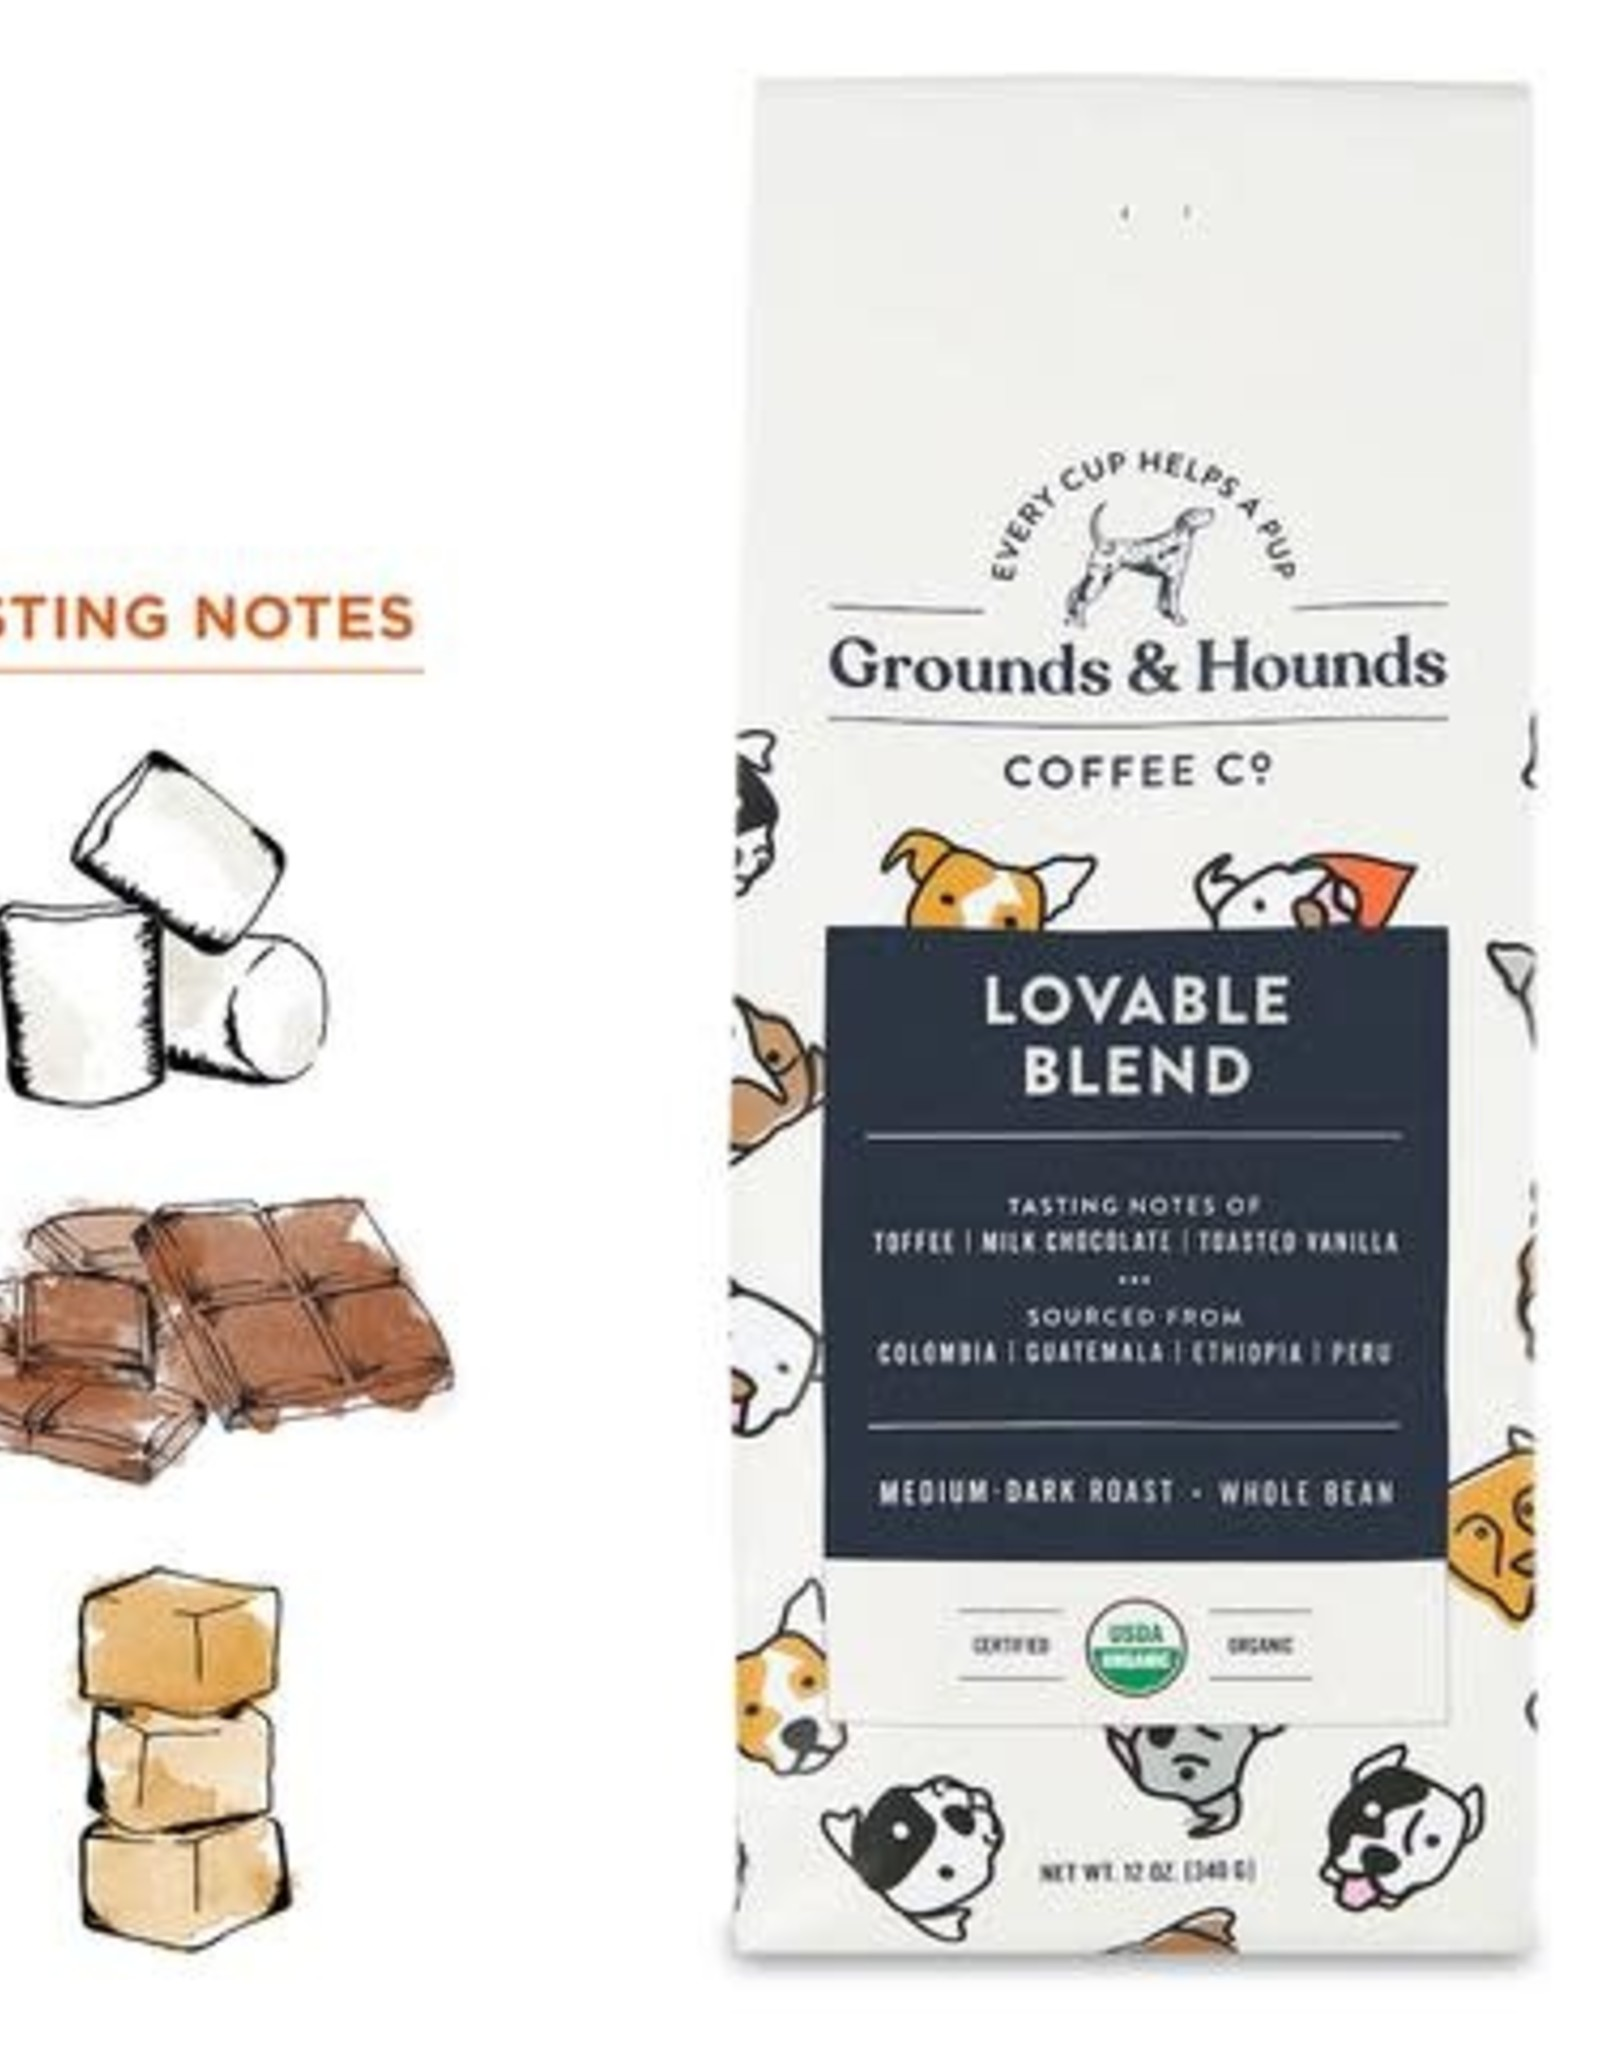 Grounds & Hounds Loveable Blend - Whole Bean